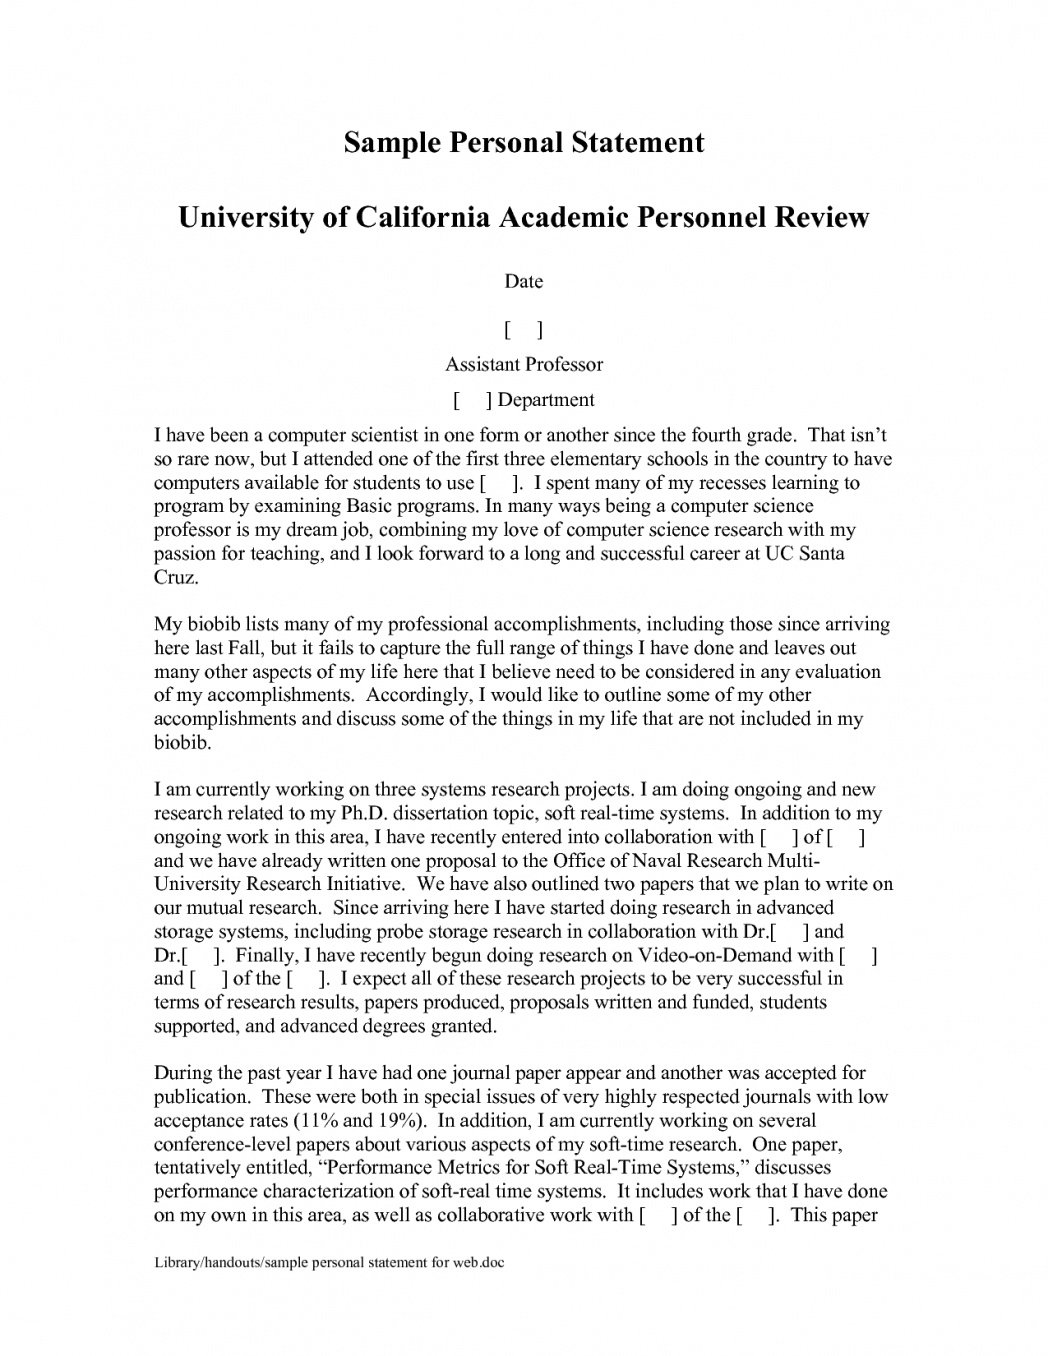 005 Essay Example Word How To Write Personal Profile Examples An On Microsoft Of Statements For Graduate School Template 0mc Definition Accent Choice Good One Incredible 3000 Double Spaced Pages Full